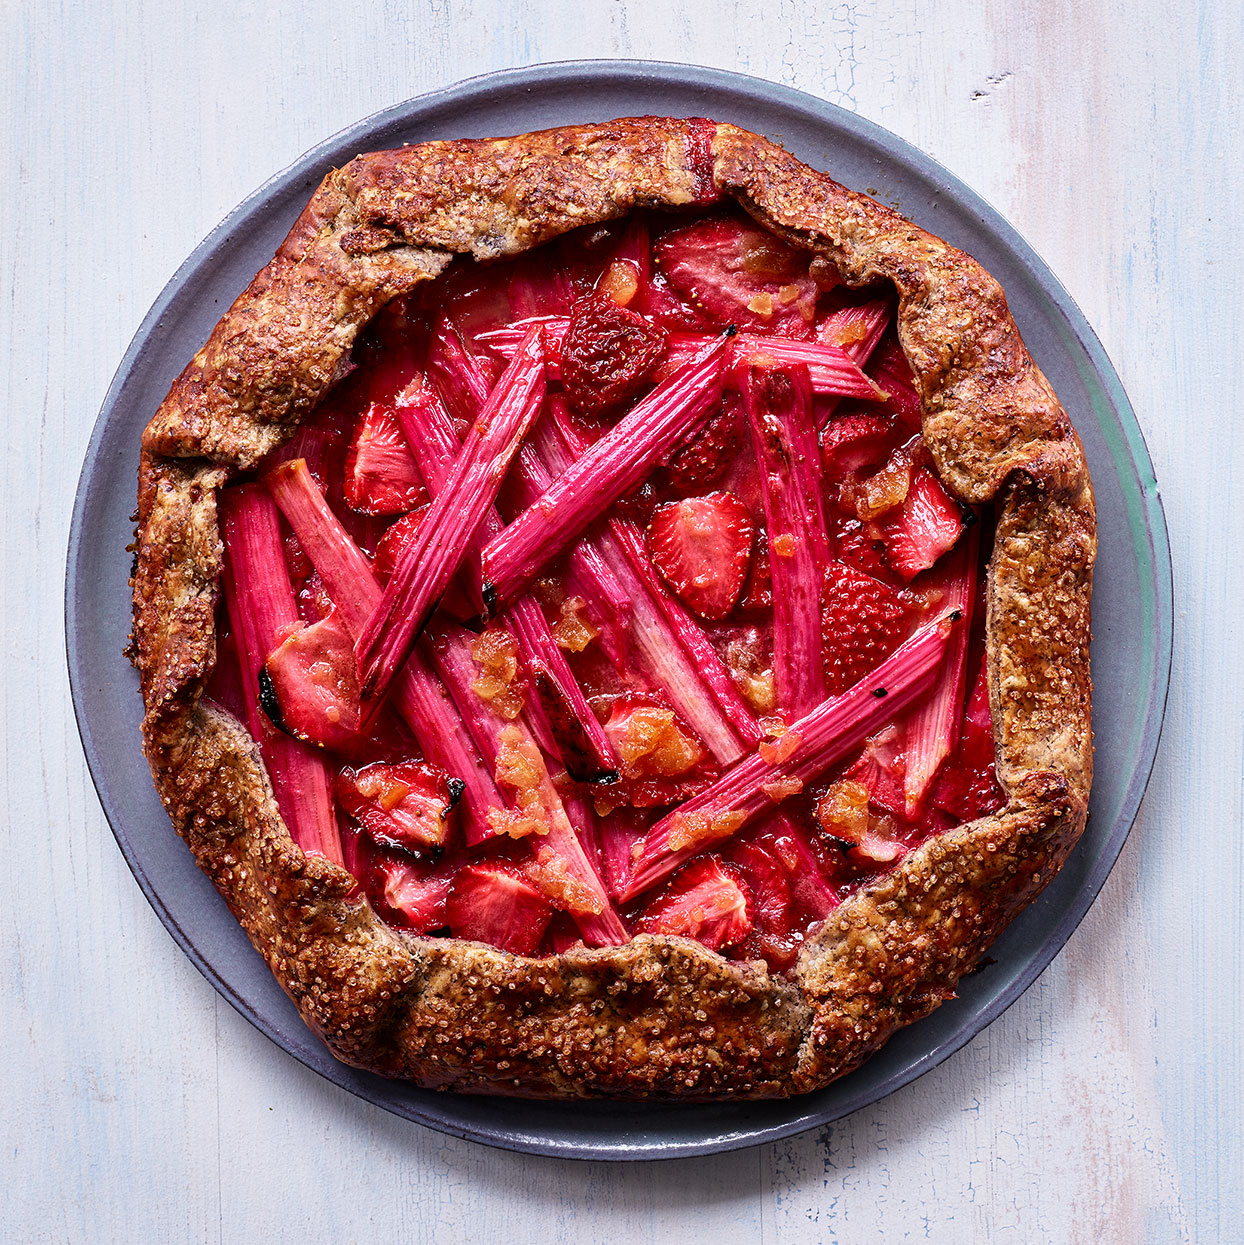 Rhubarb-Strawberry Galette